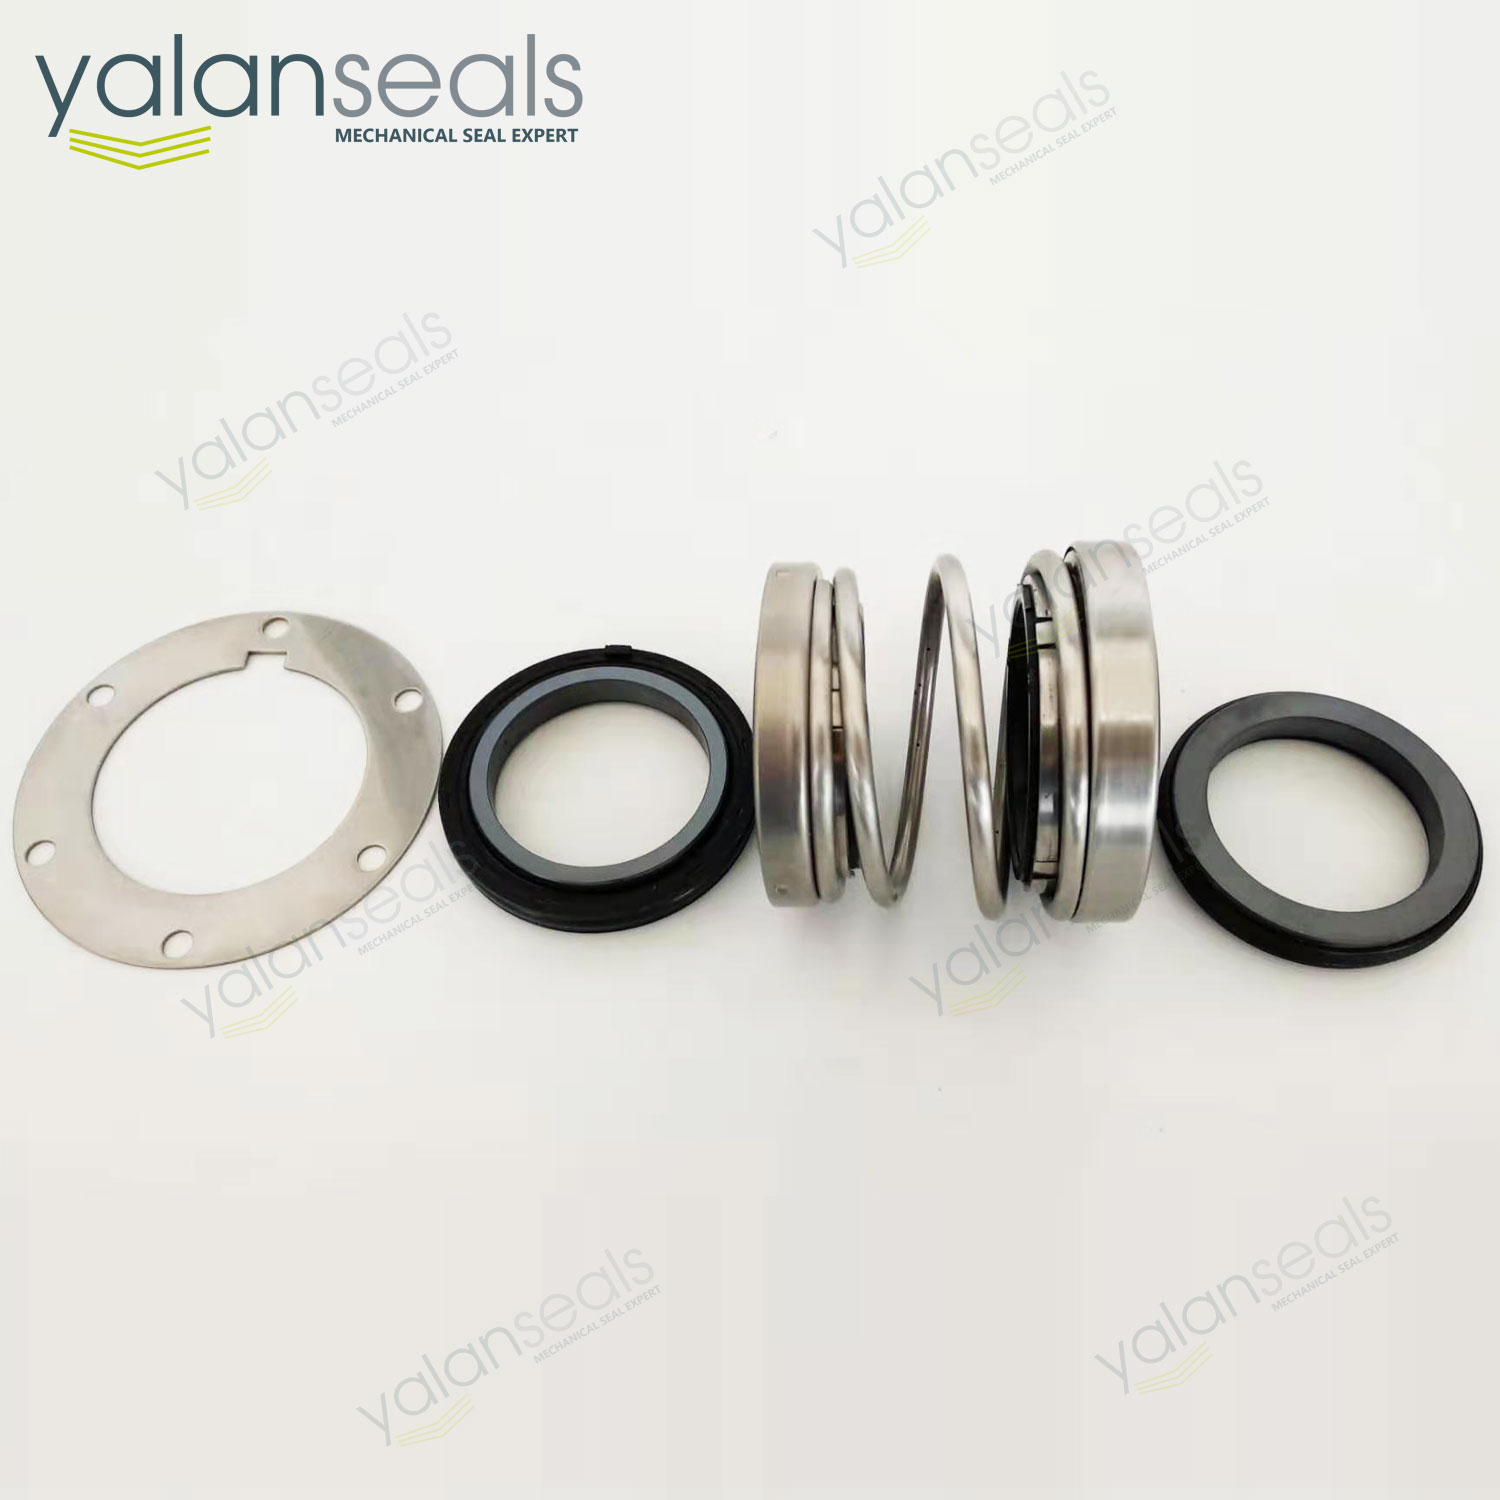 ED560 Elastomer Bellow Double Ended Mechanical Seal